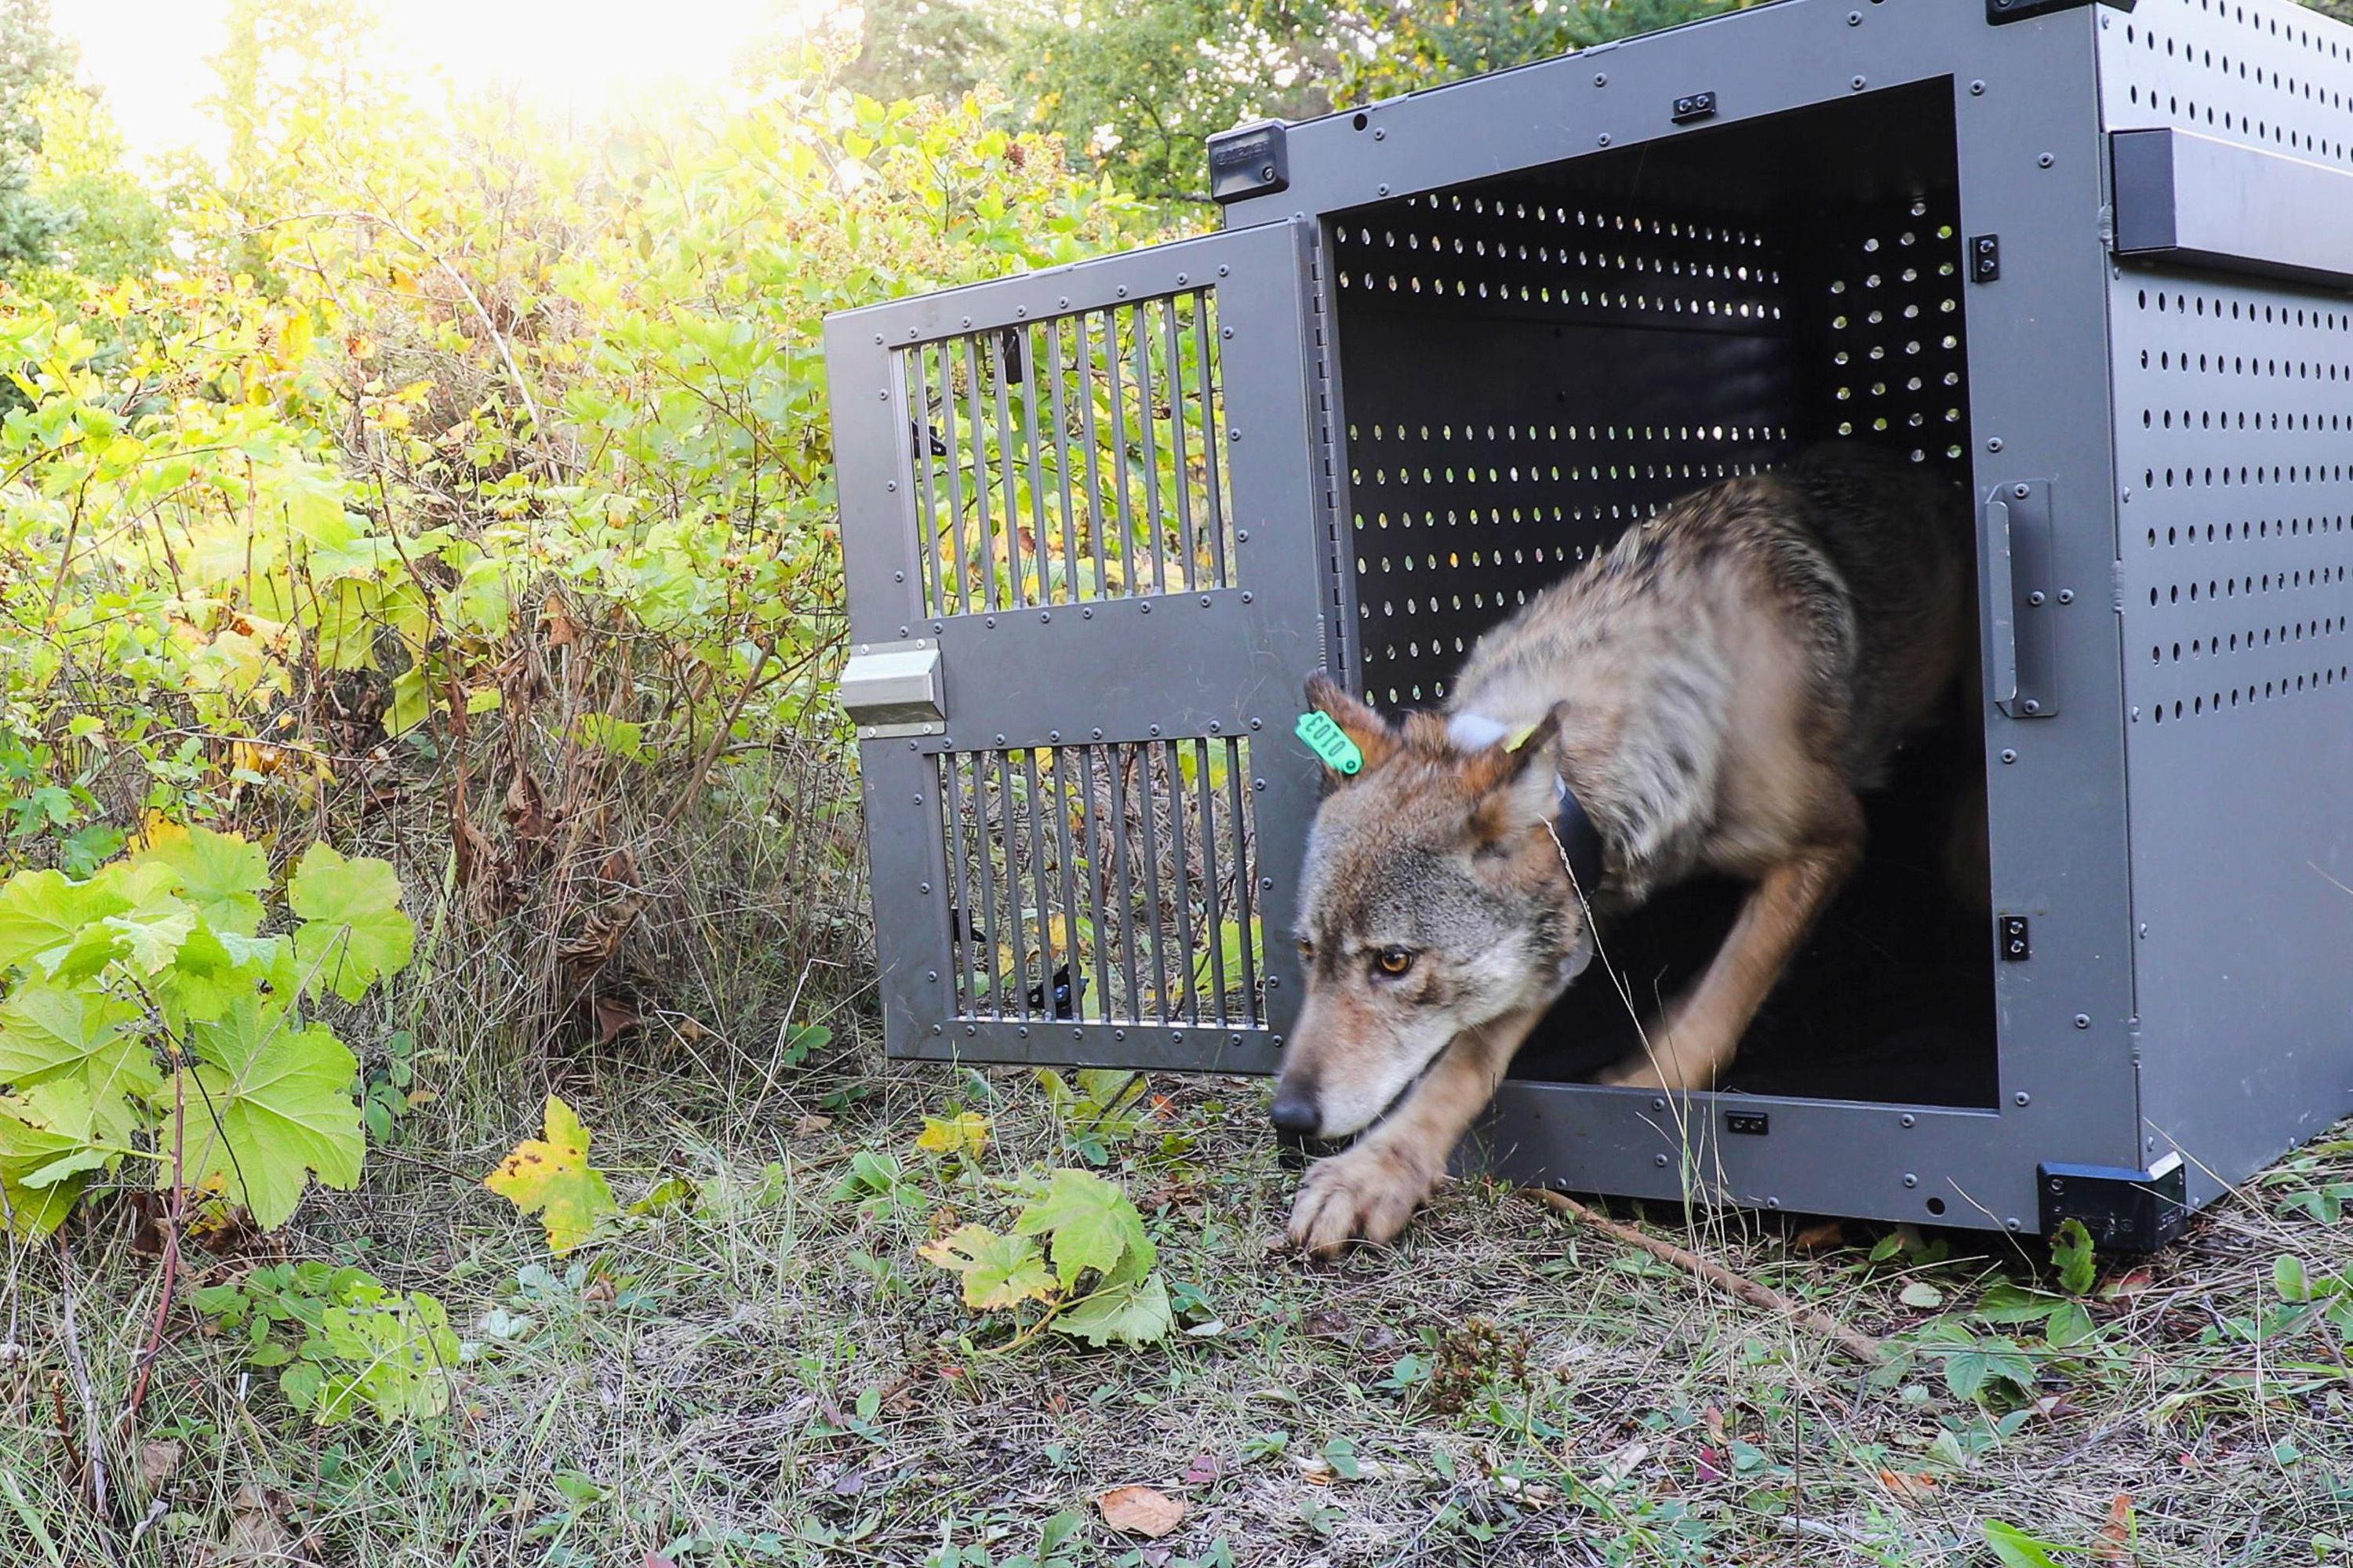 In this Sept. 26, 2018, file photo, provided by the National Park Service, a 4-year-old female gray wolf emerges from her cage as it released at Isle Royale National Park in Michigan. U.S. wildlife officials plan to lift protections for gray wolves across the Lower 48 states, a move certain to re-ignite the legal battle over a predator that's rebounding in some regions and running into conflicts with farmers and ranchers, an official told The Associated Press. (National Park Service via AP, File)